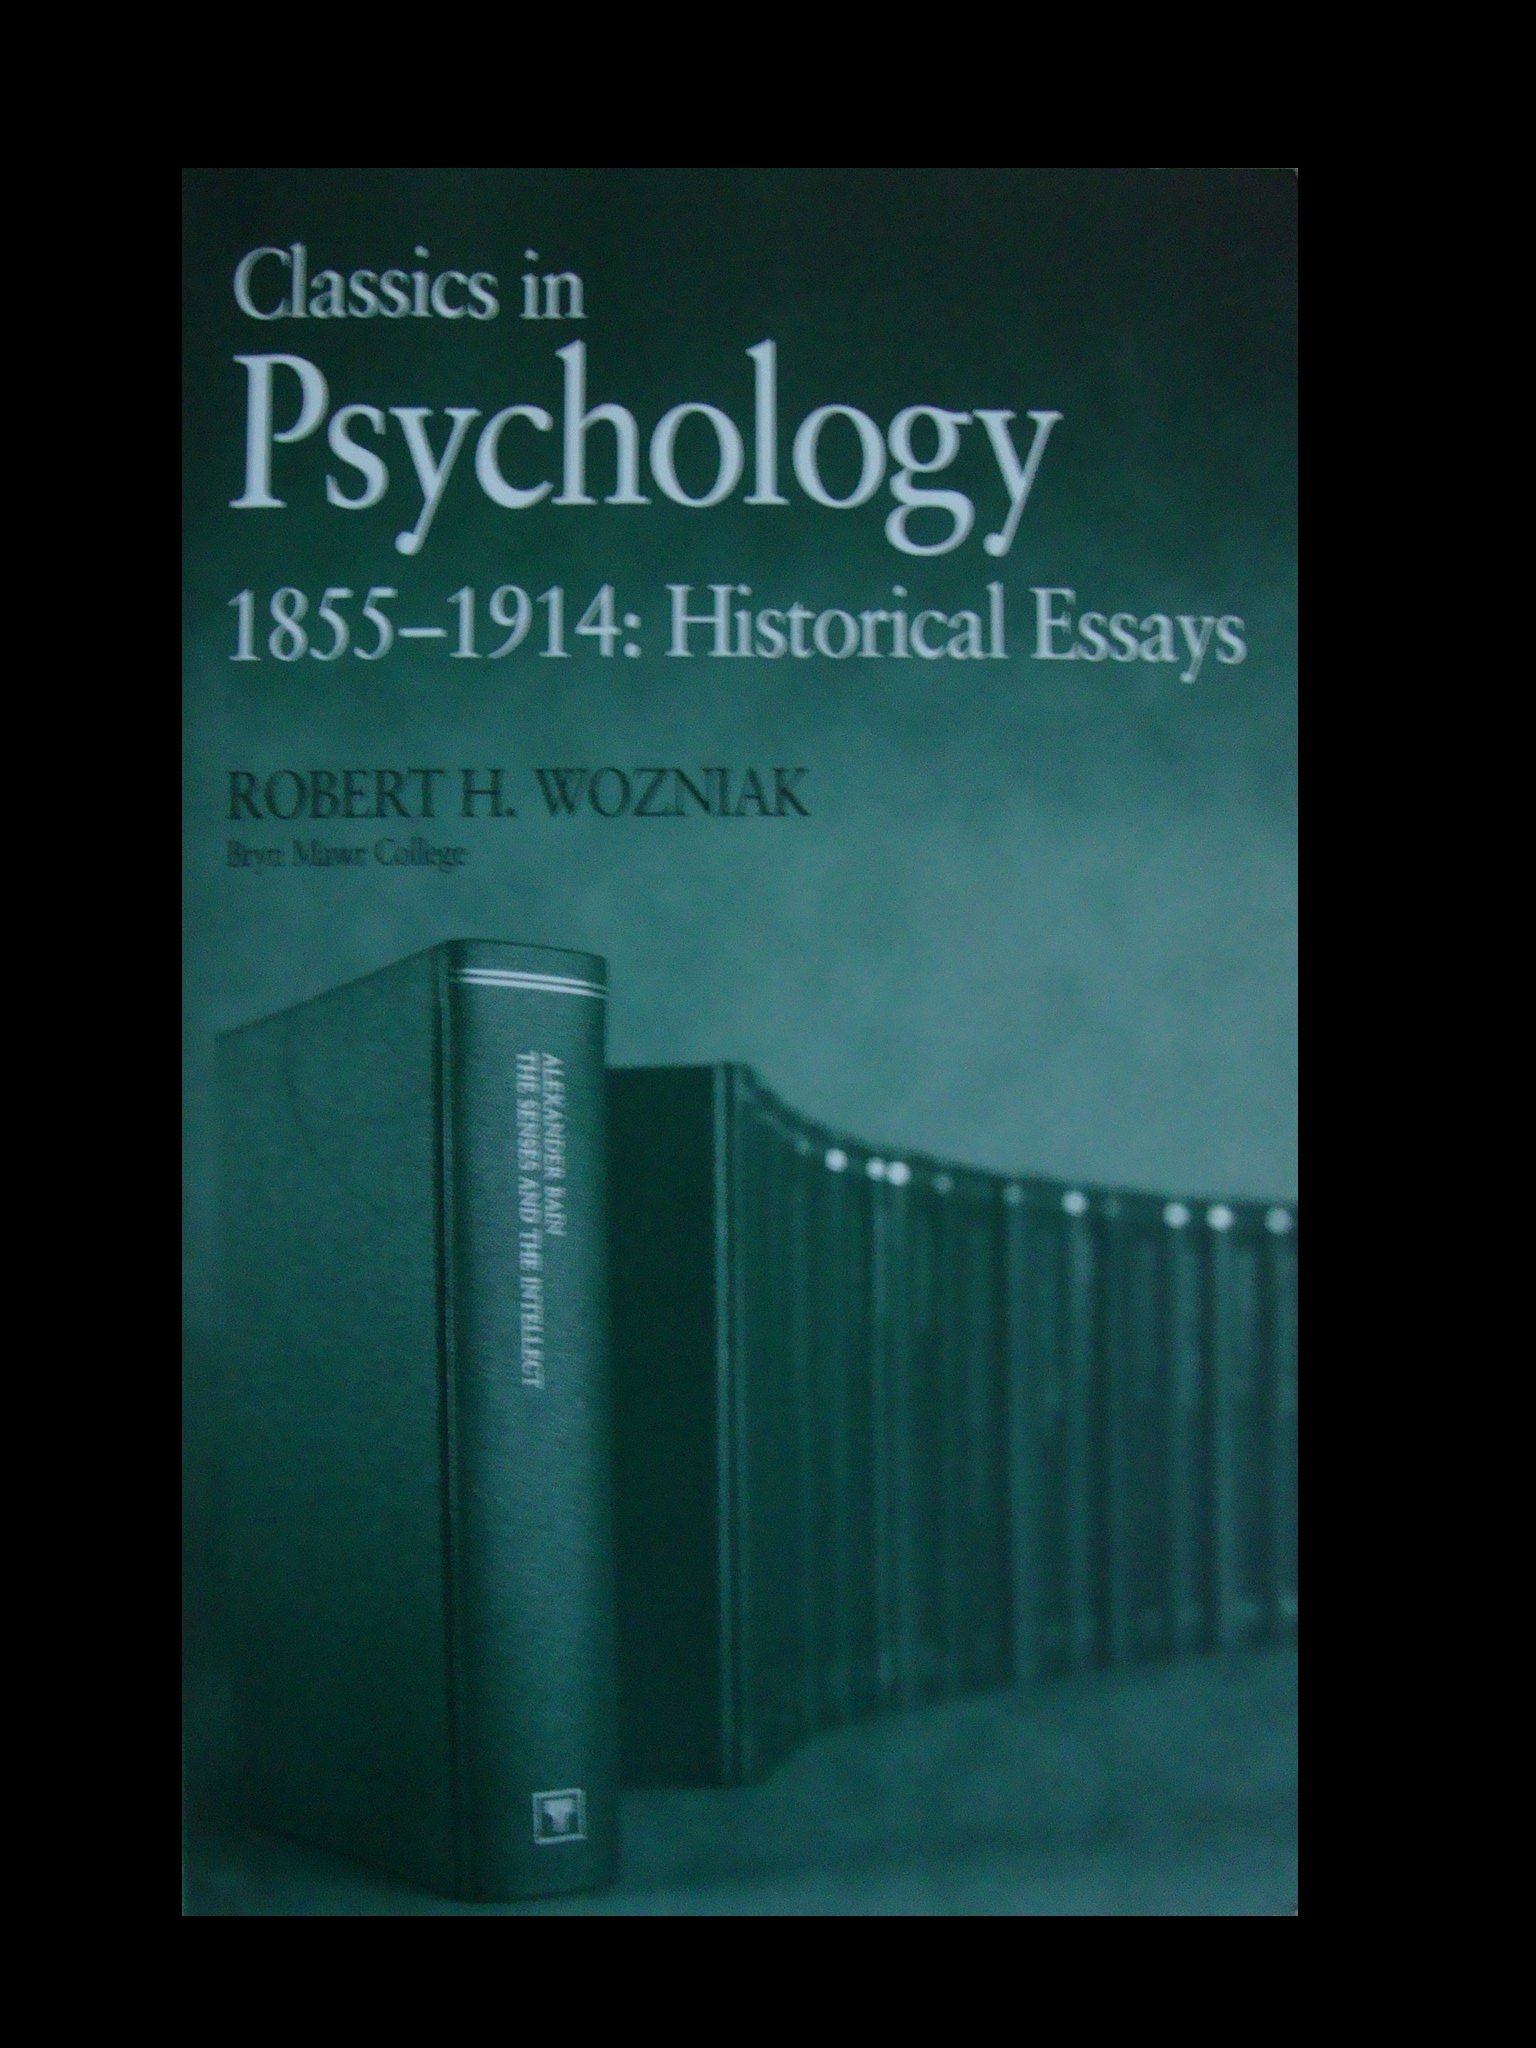 Classics in Psychology 1855-1914: Historical Essays